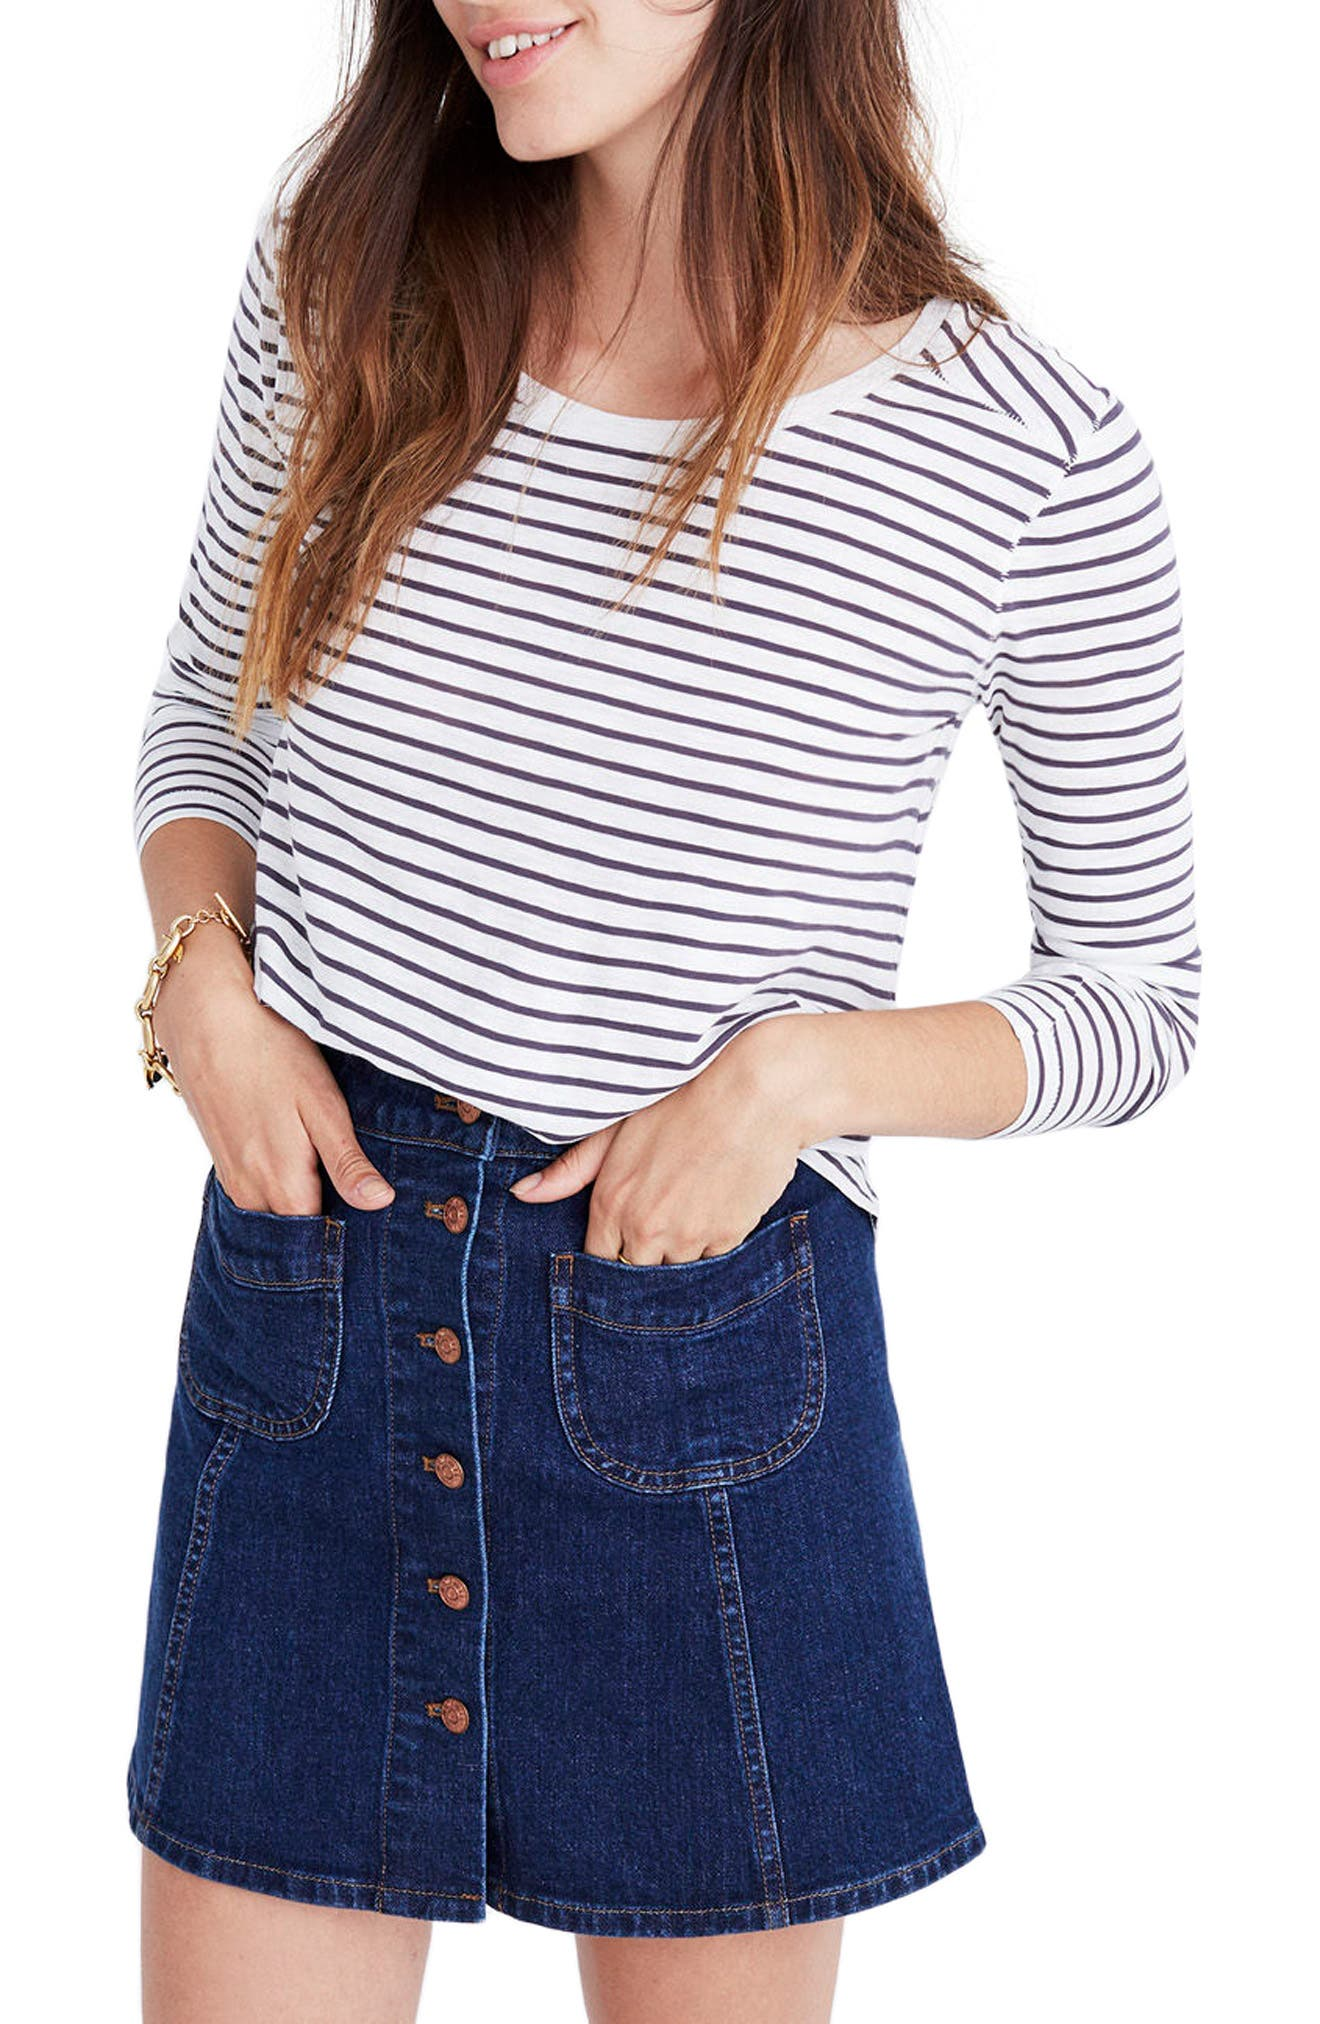 Alternate Image 1 Selected - Madewell Whisper Cotton Stripe Long Sleeve Tee